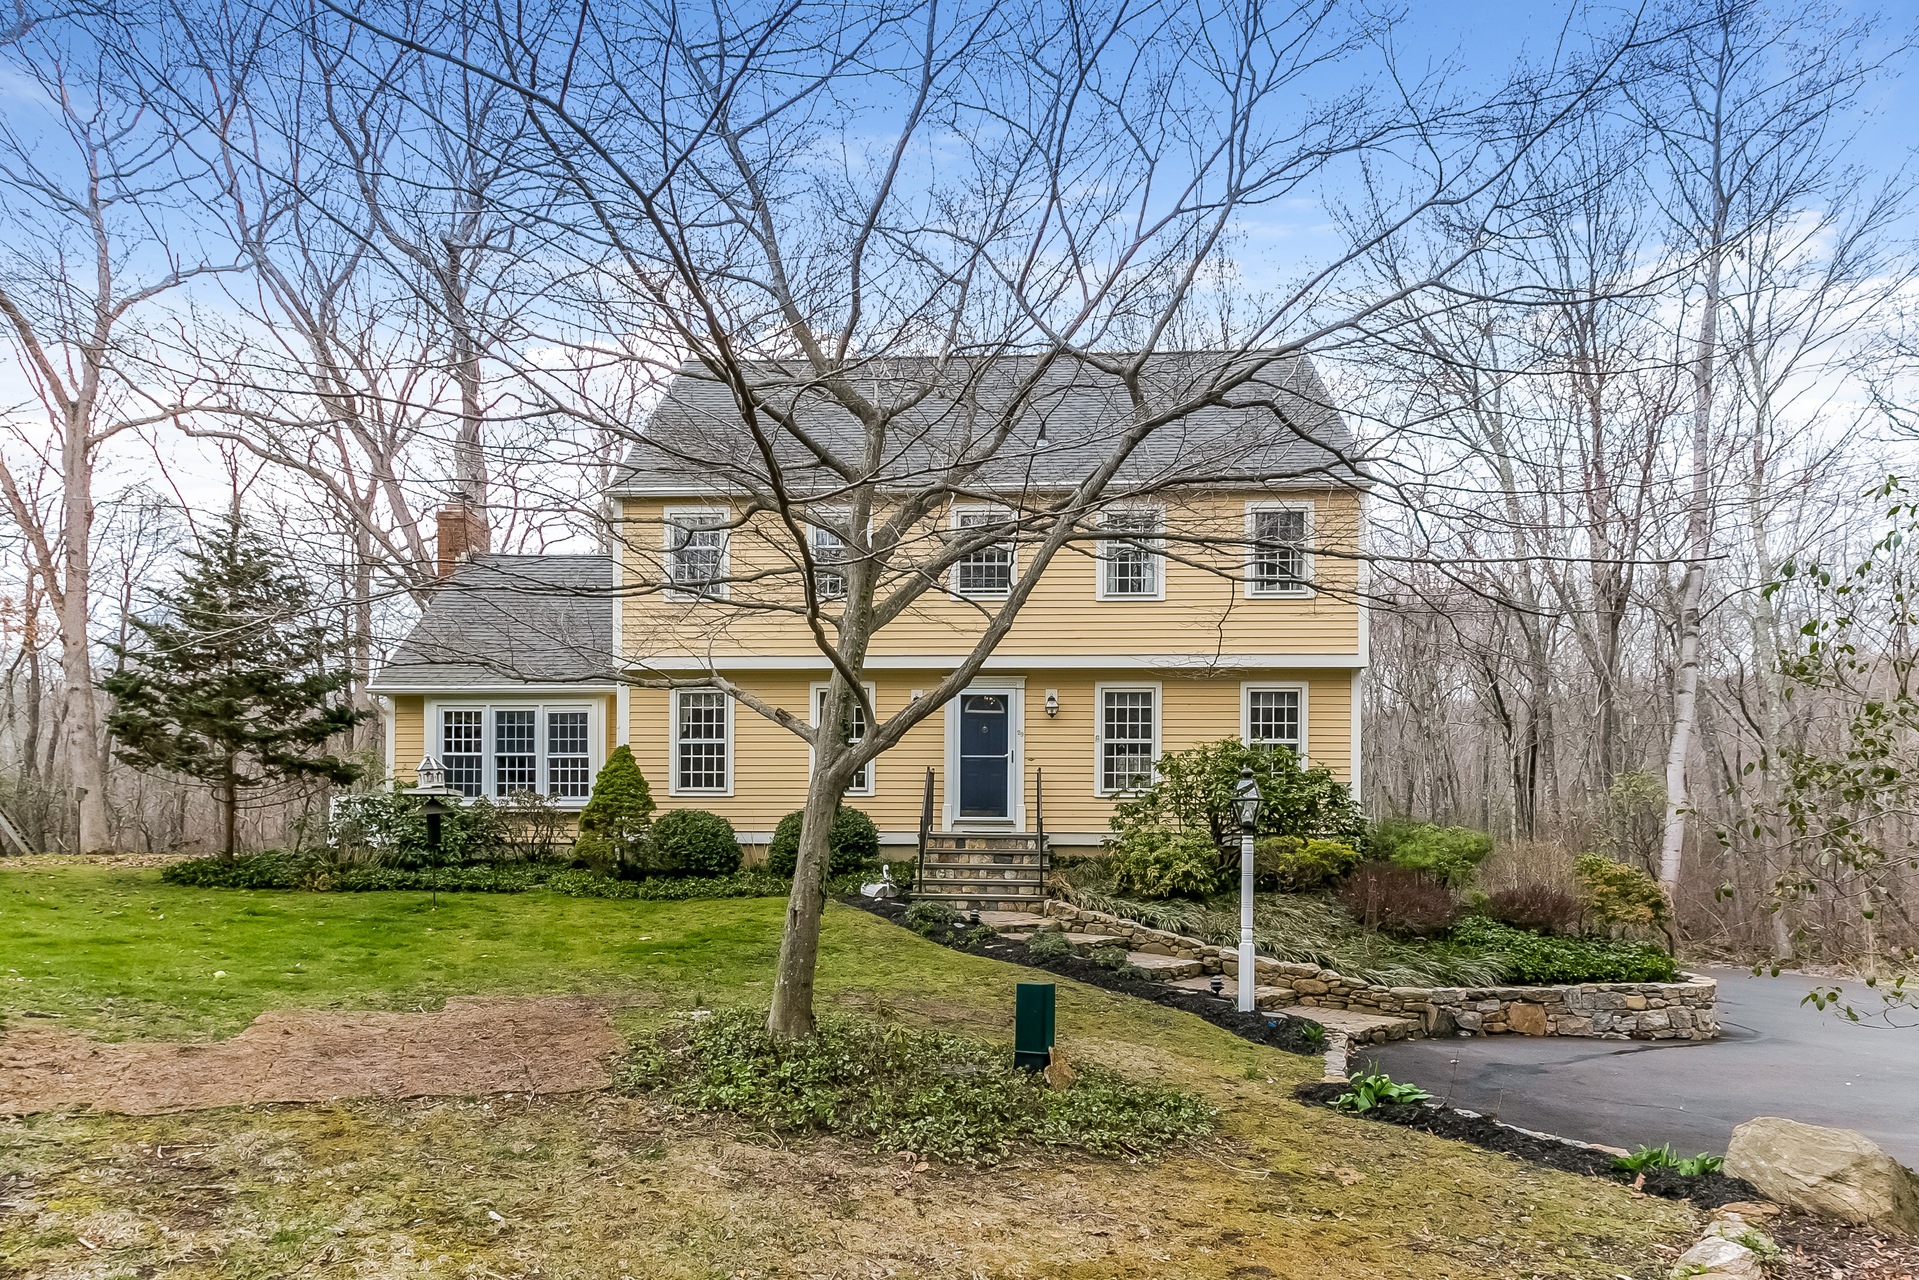 Single Family Home for Sale at 29 Paper Mill Dr Madison, Connecticut, 06443 United States